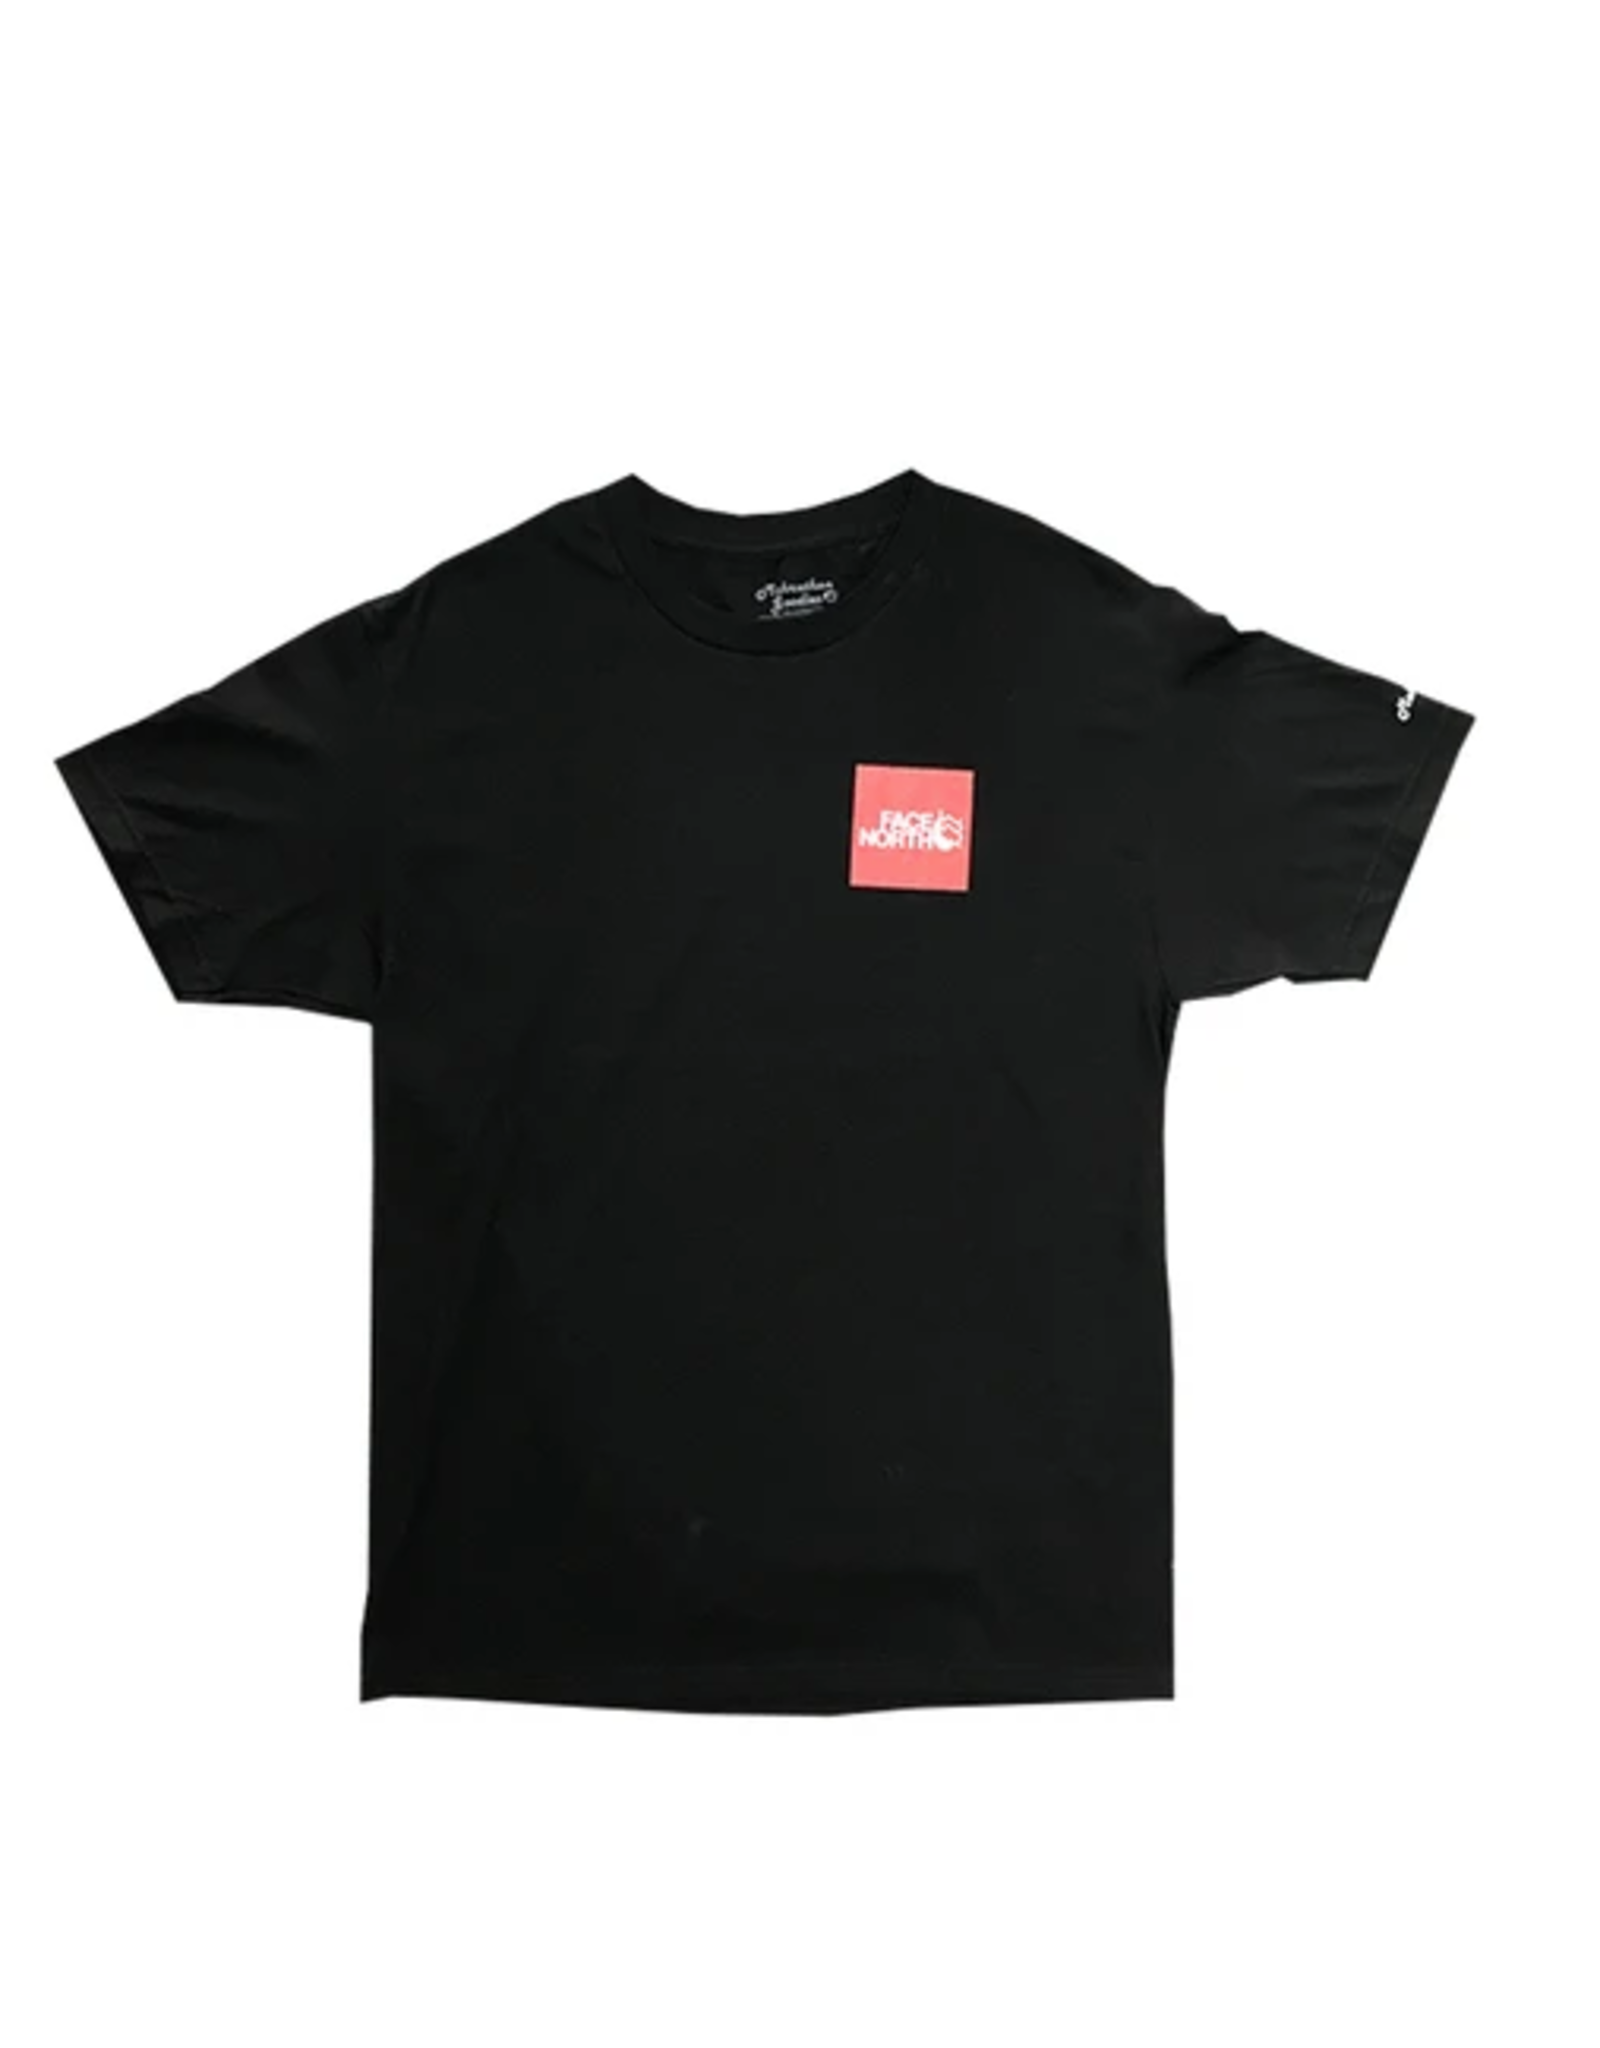 Mehrathon Face North Tee - Black